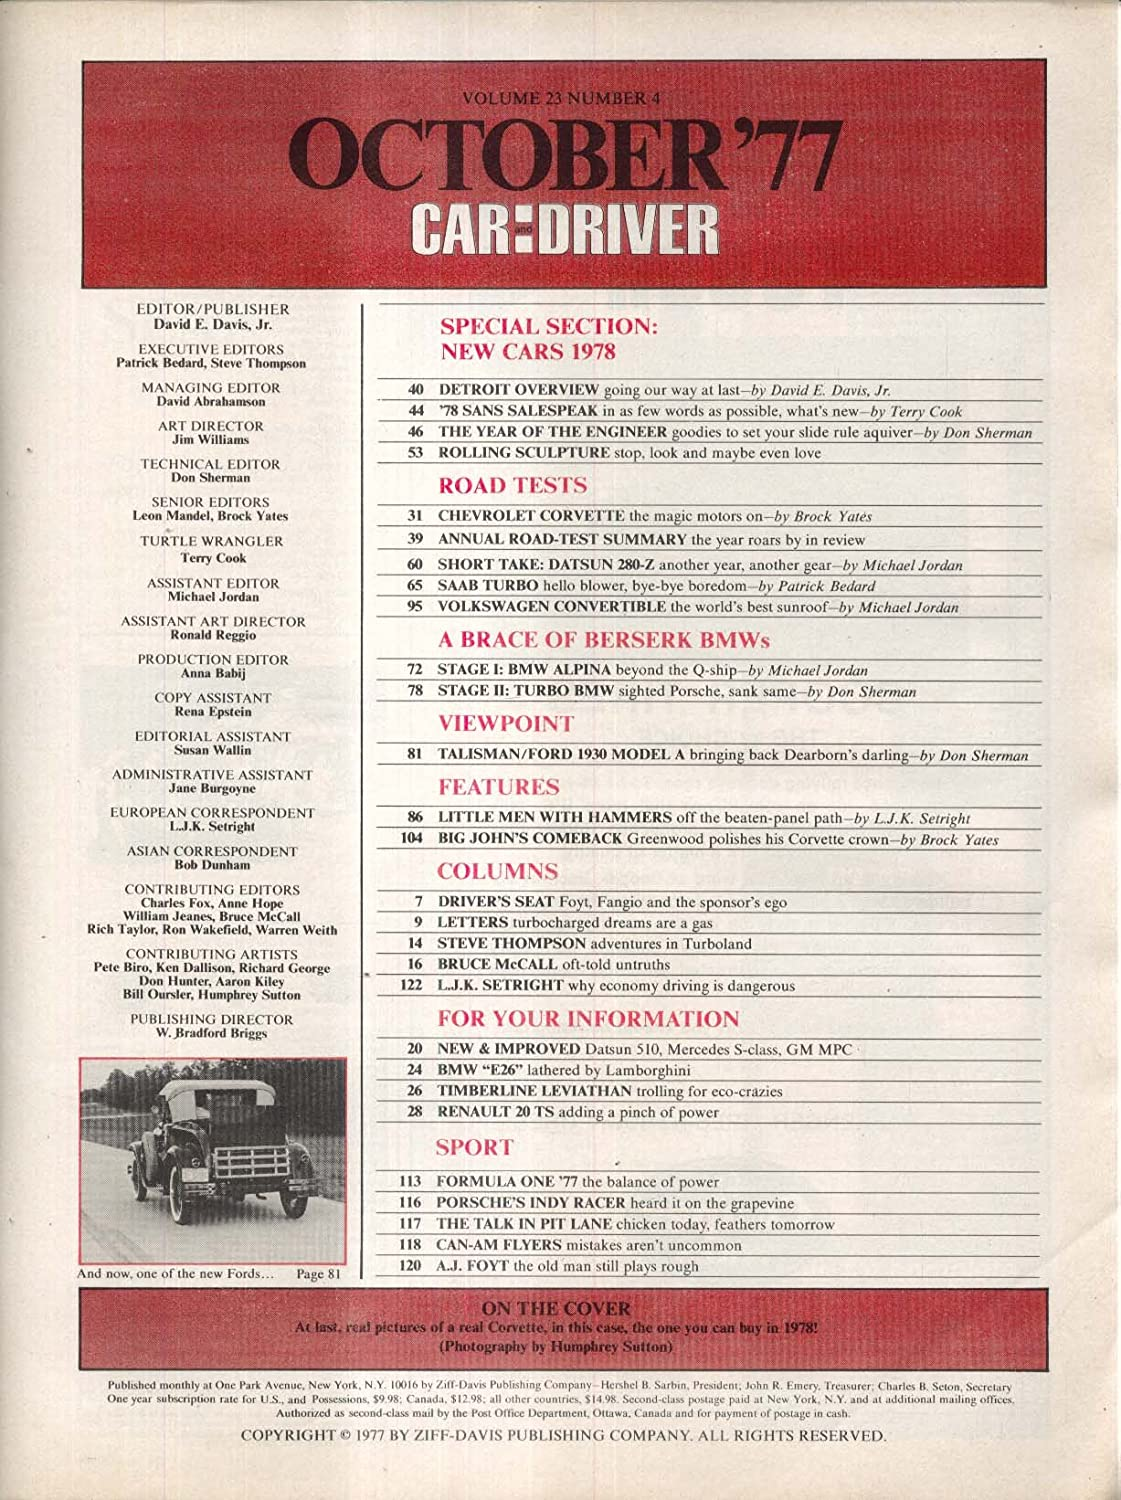 CAR & DRIVER Corvette Datsun 280-Z Saab Turbo Volkswagen road tests 10 1977 at Amazons Entertainment Collectibles Store